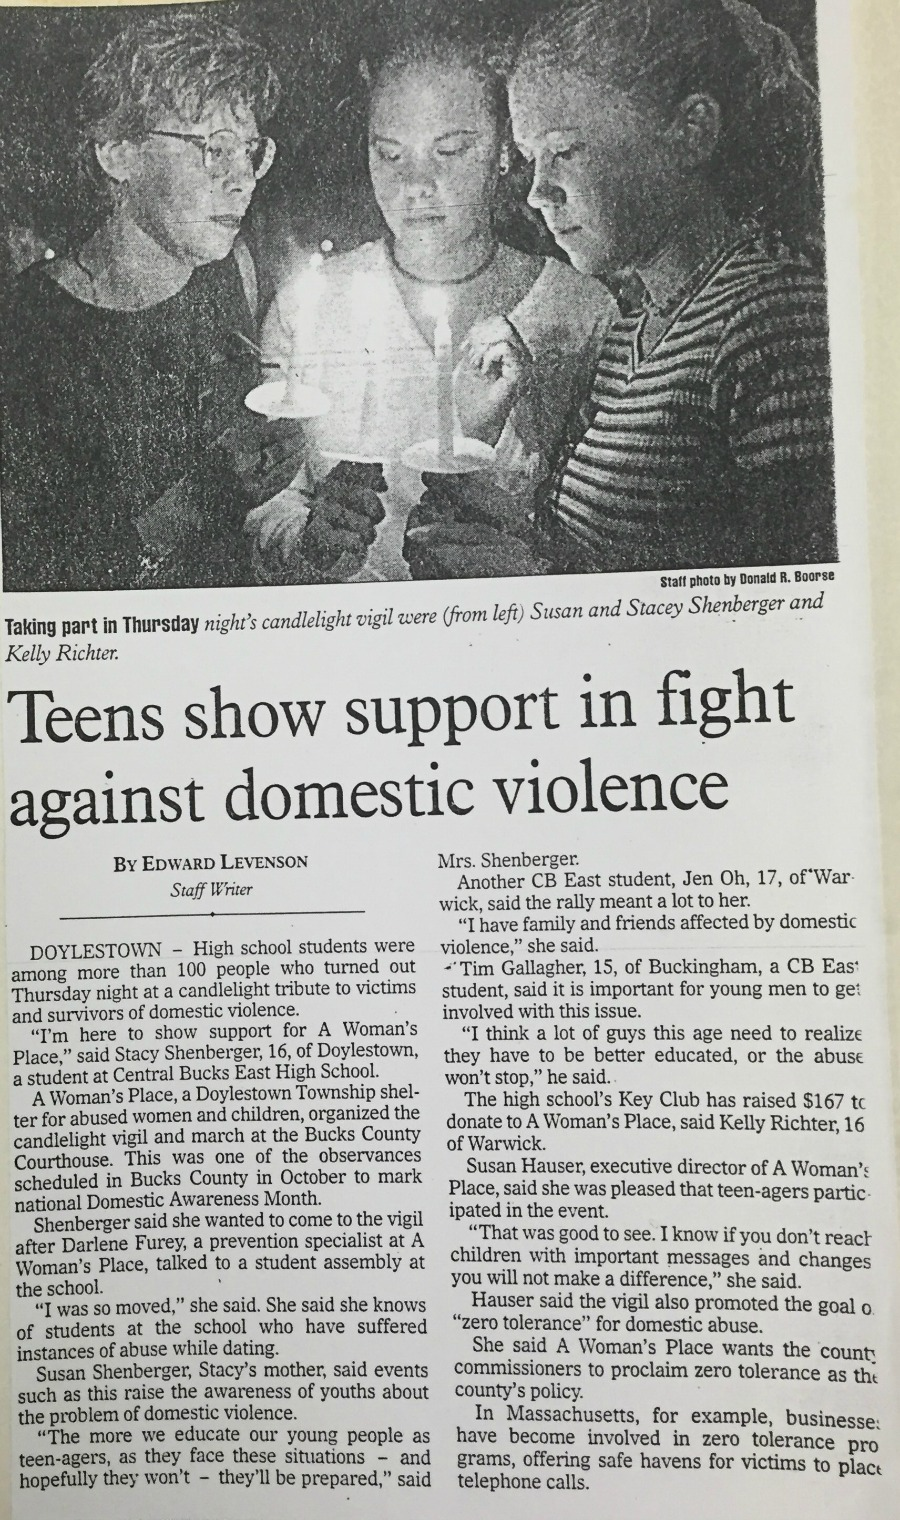 Teens show support in the fight against domestic violence at AWP's Candlelight Vigil.